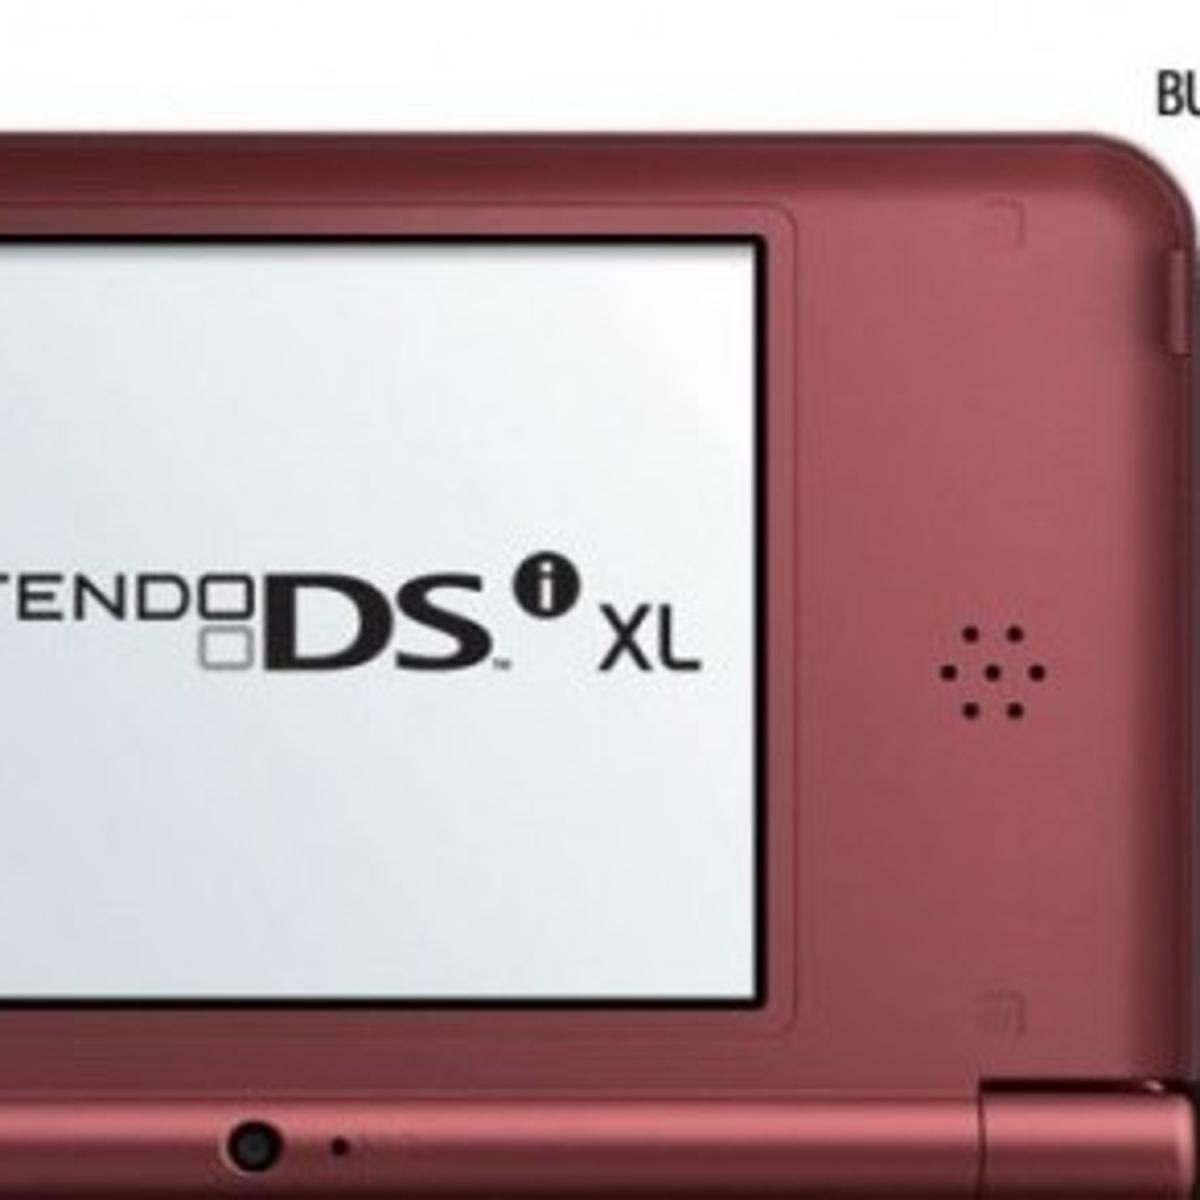 It's All Game: Nintendo DS: X to the L to the wow | Games | madison com